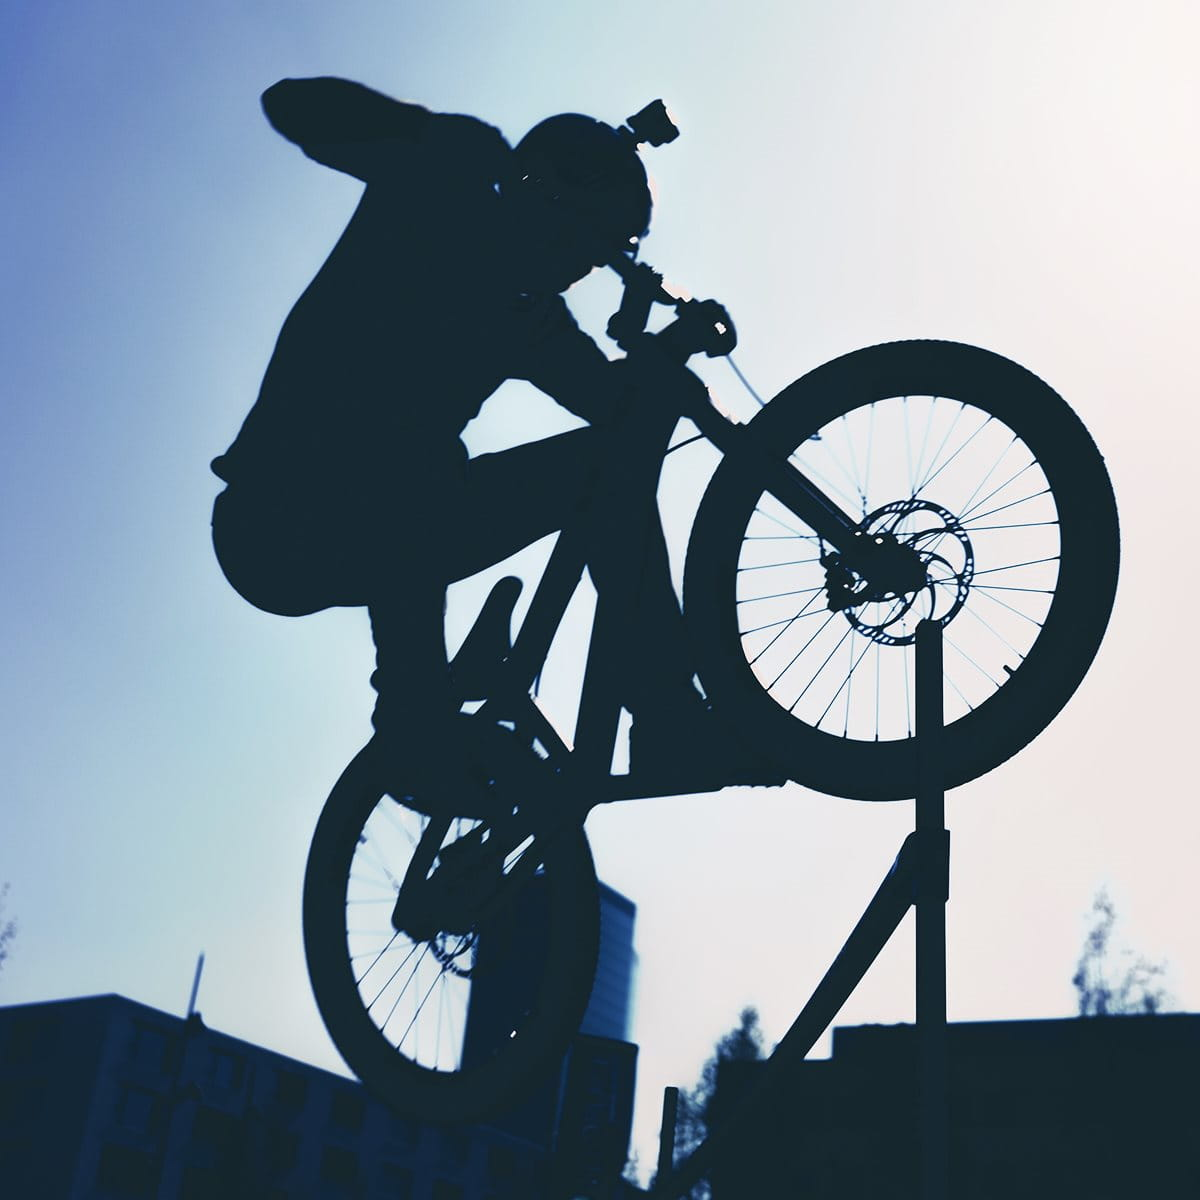 BMX rider with helmet camera against back light while jumping an obstacle